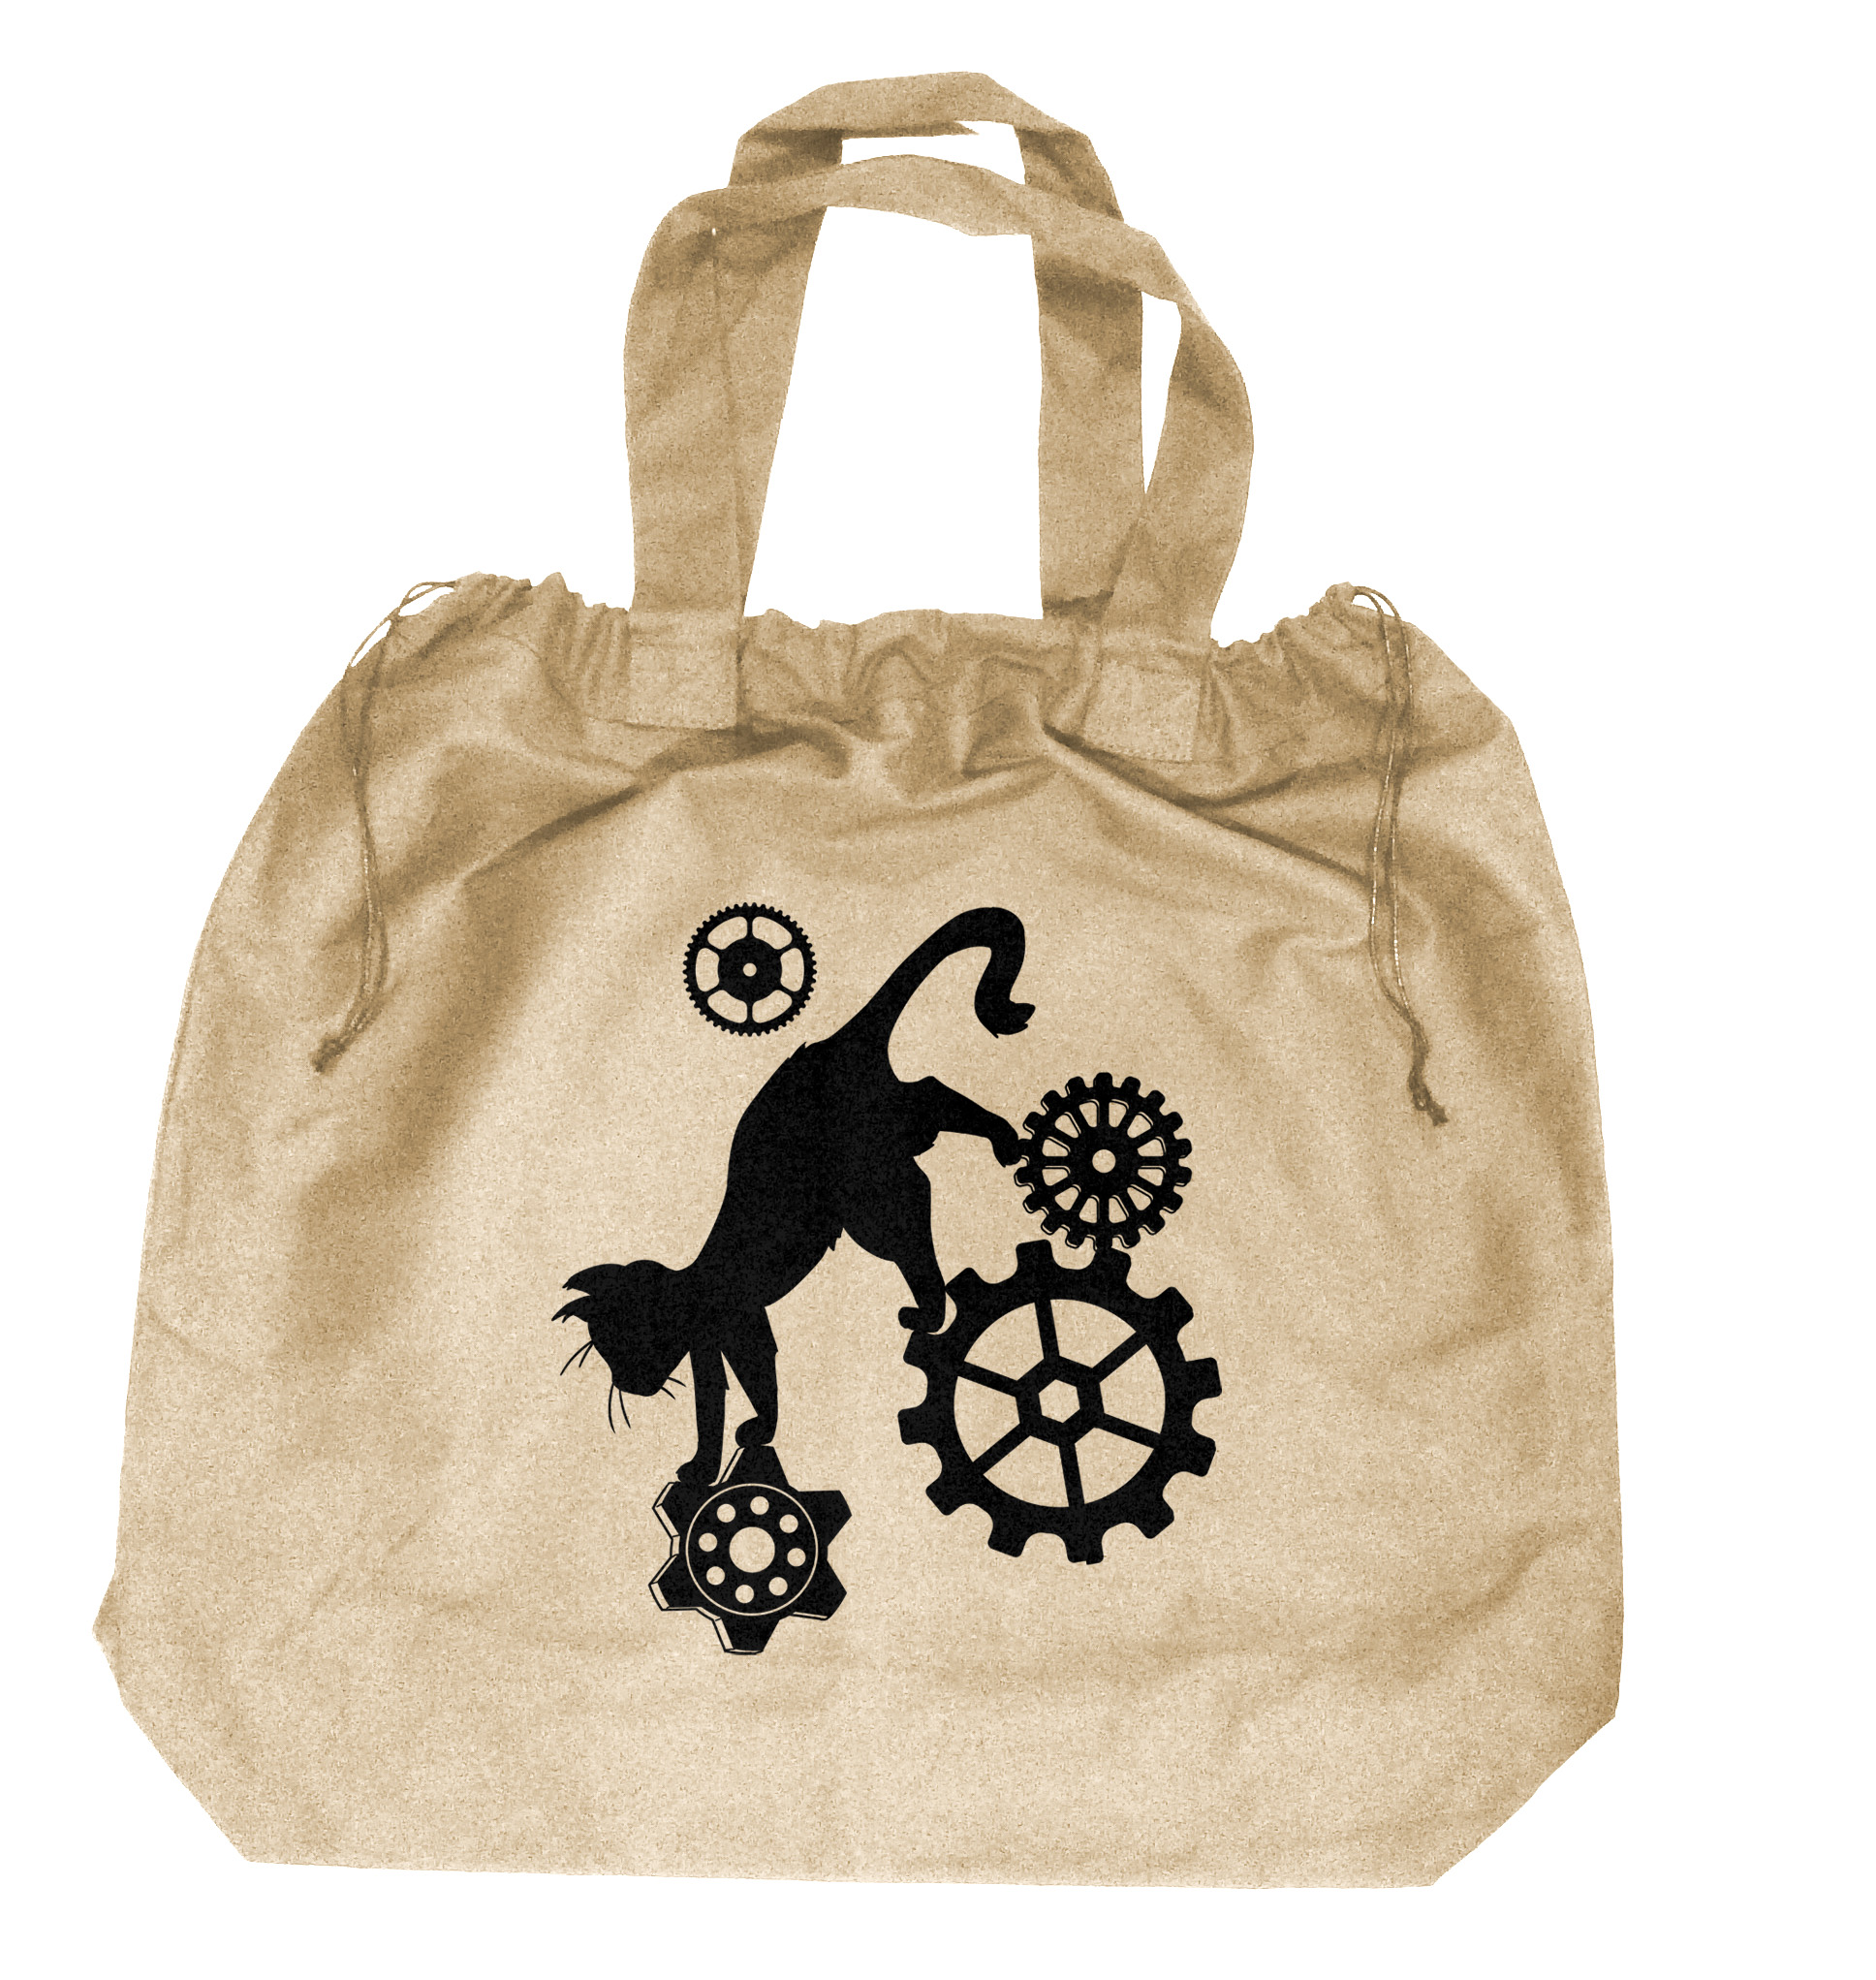 Steampunk Cat Extra-Large Drawstring Beach Bag - Natural